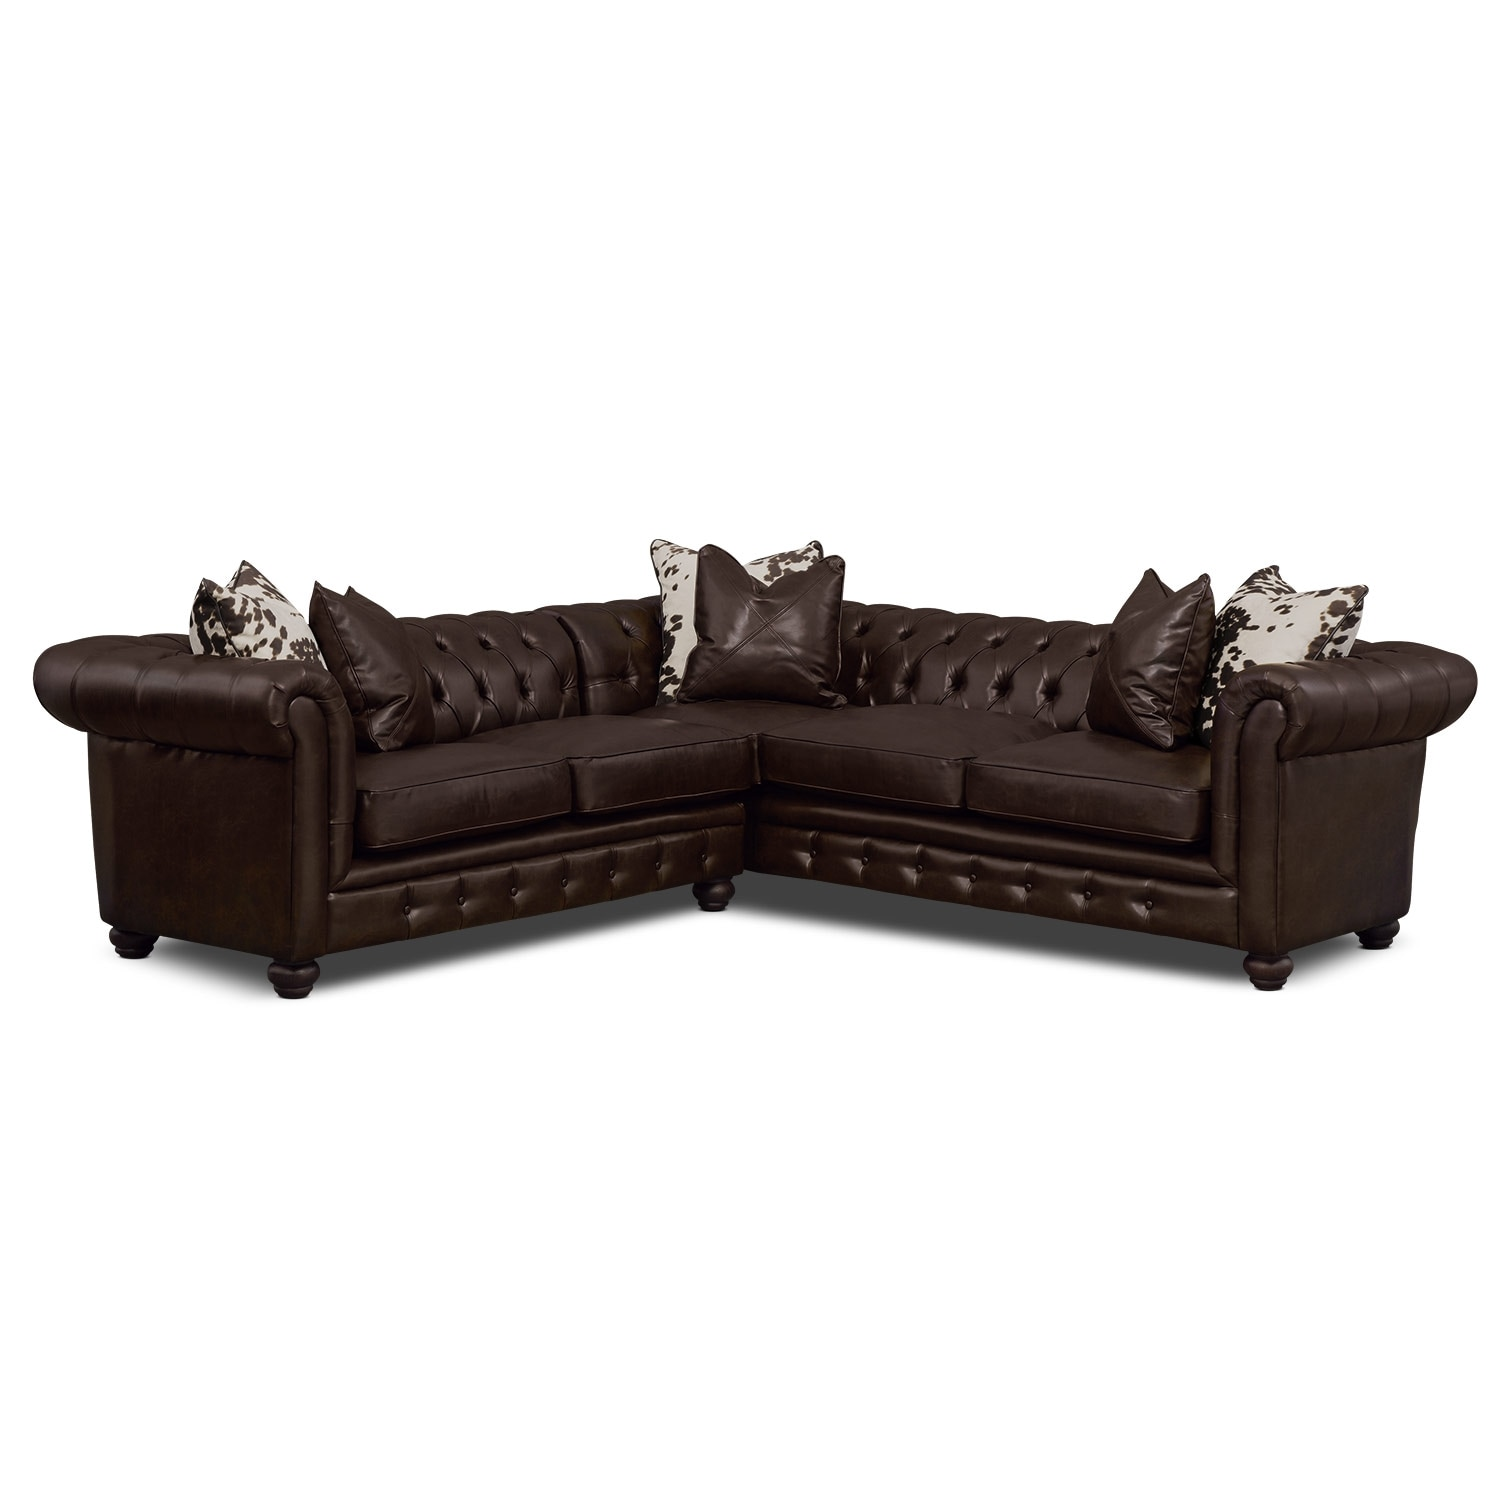 Living Room Furniture - Madeline 2-Piece Sectional - Chocolate